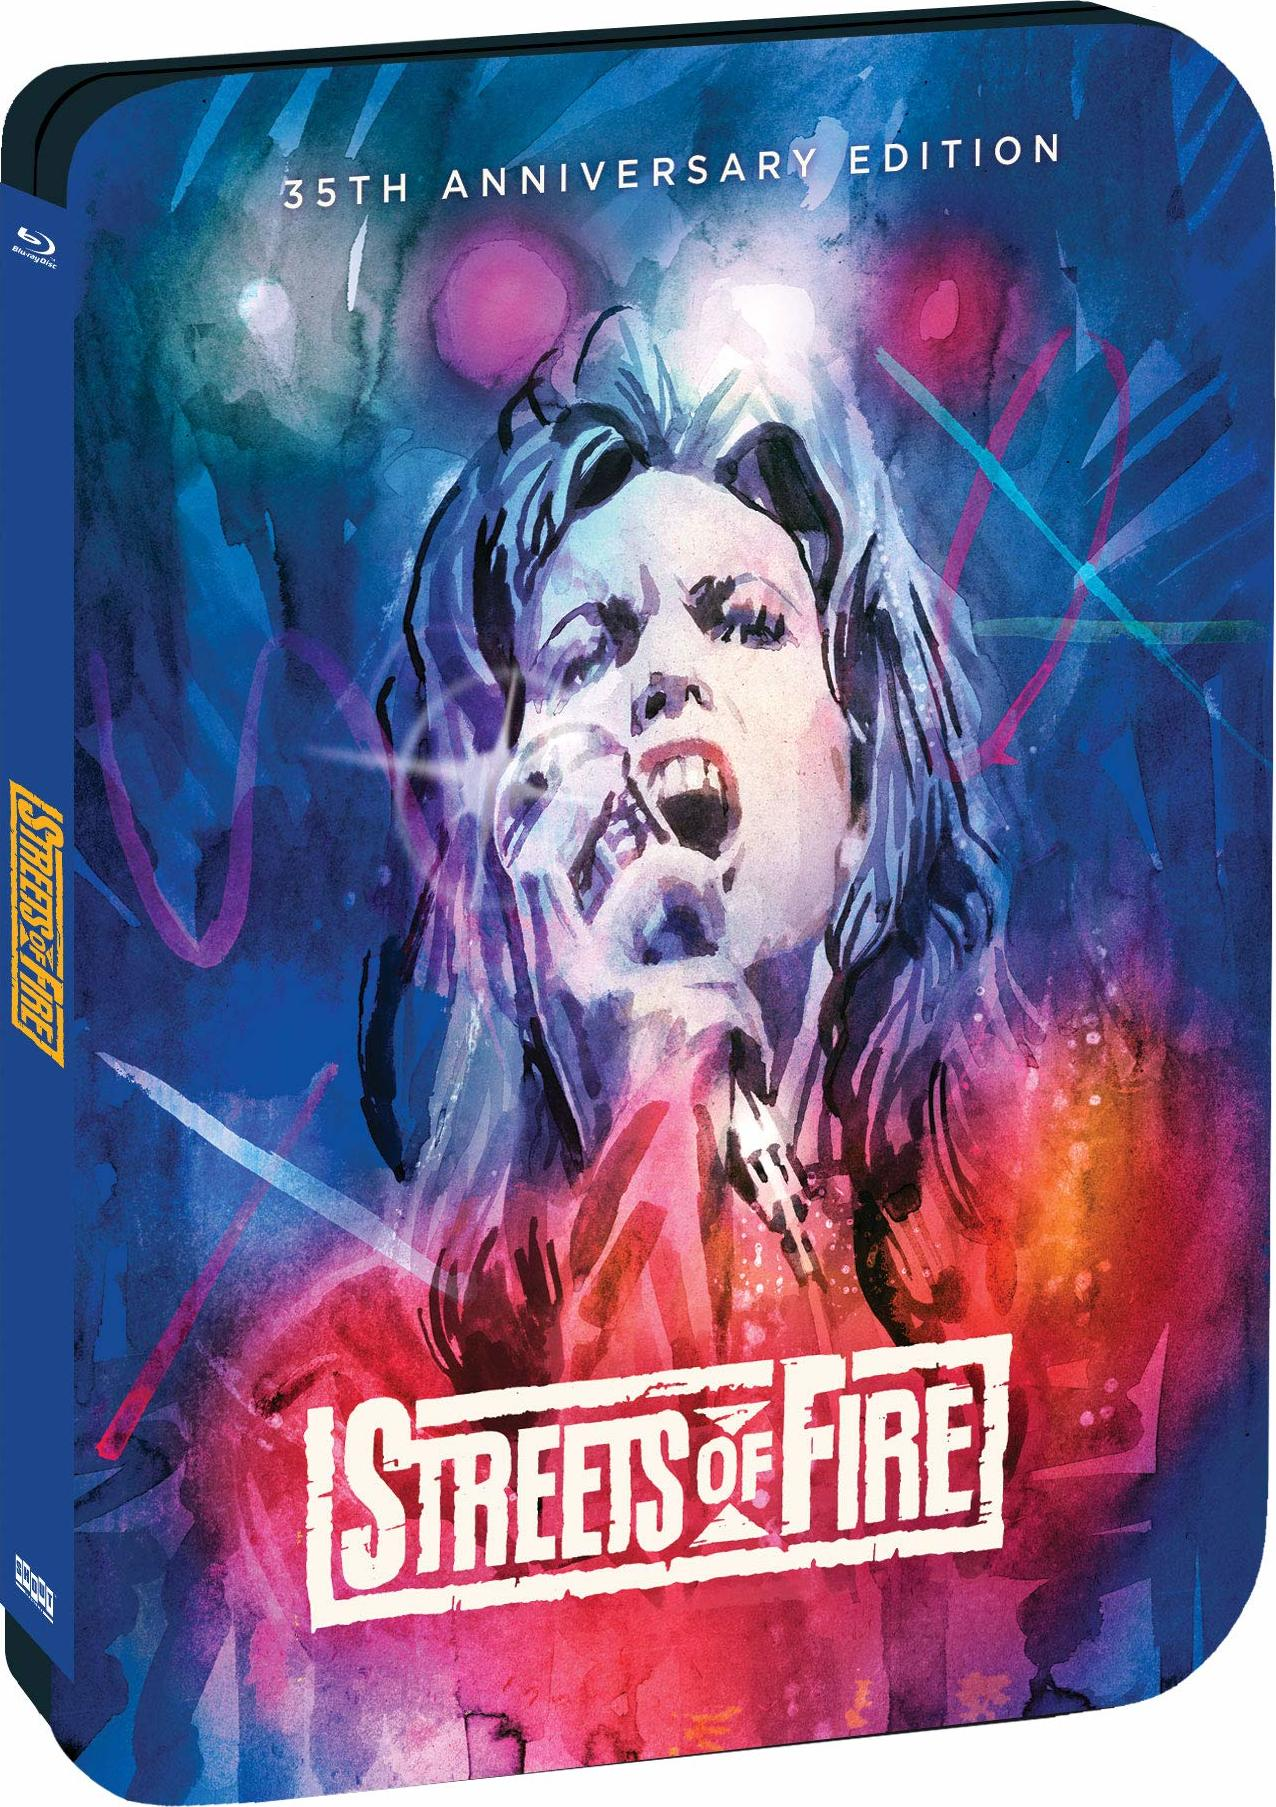 Streets of Fire (Limited 35th Anniversary Edition Steelbook)(Blu-ray)(Region A)